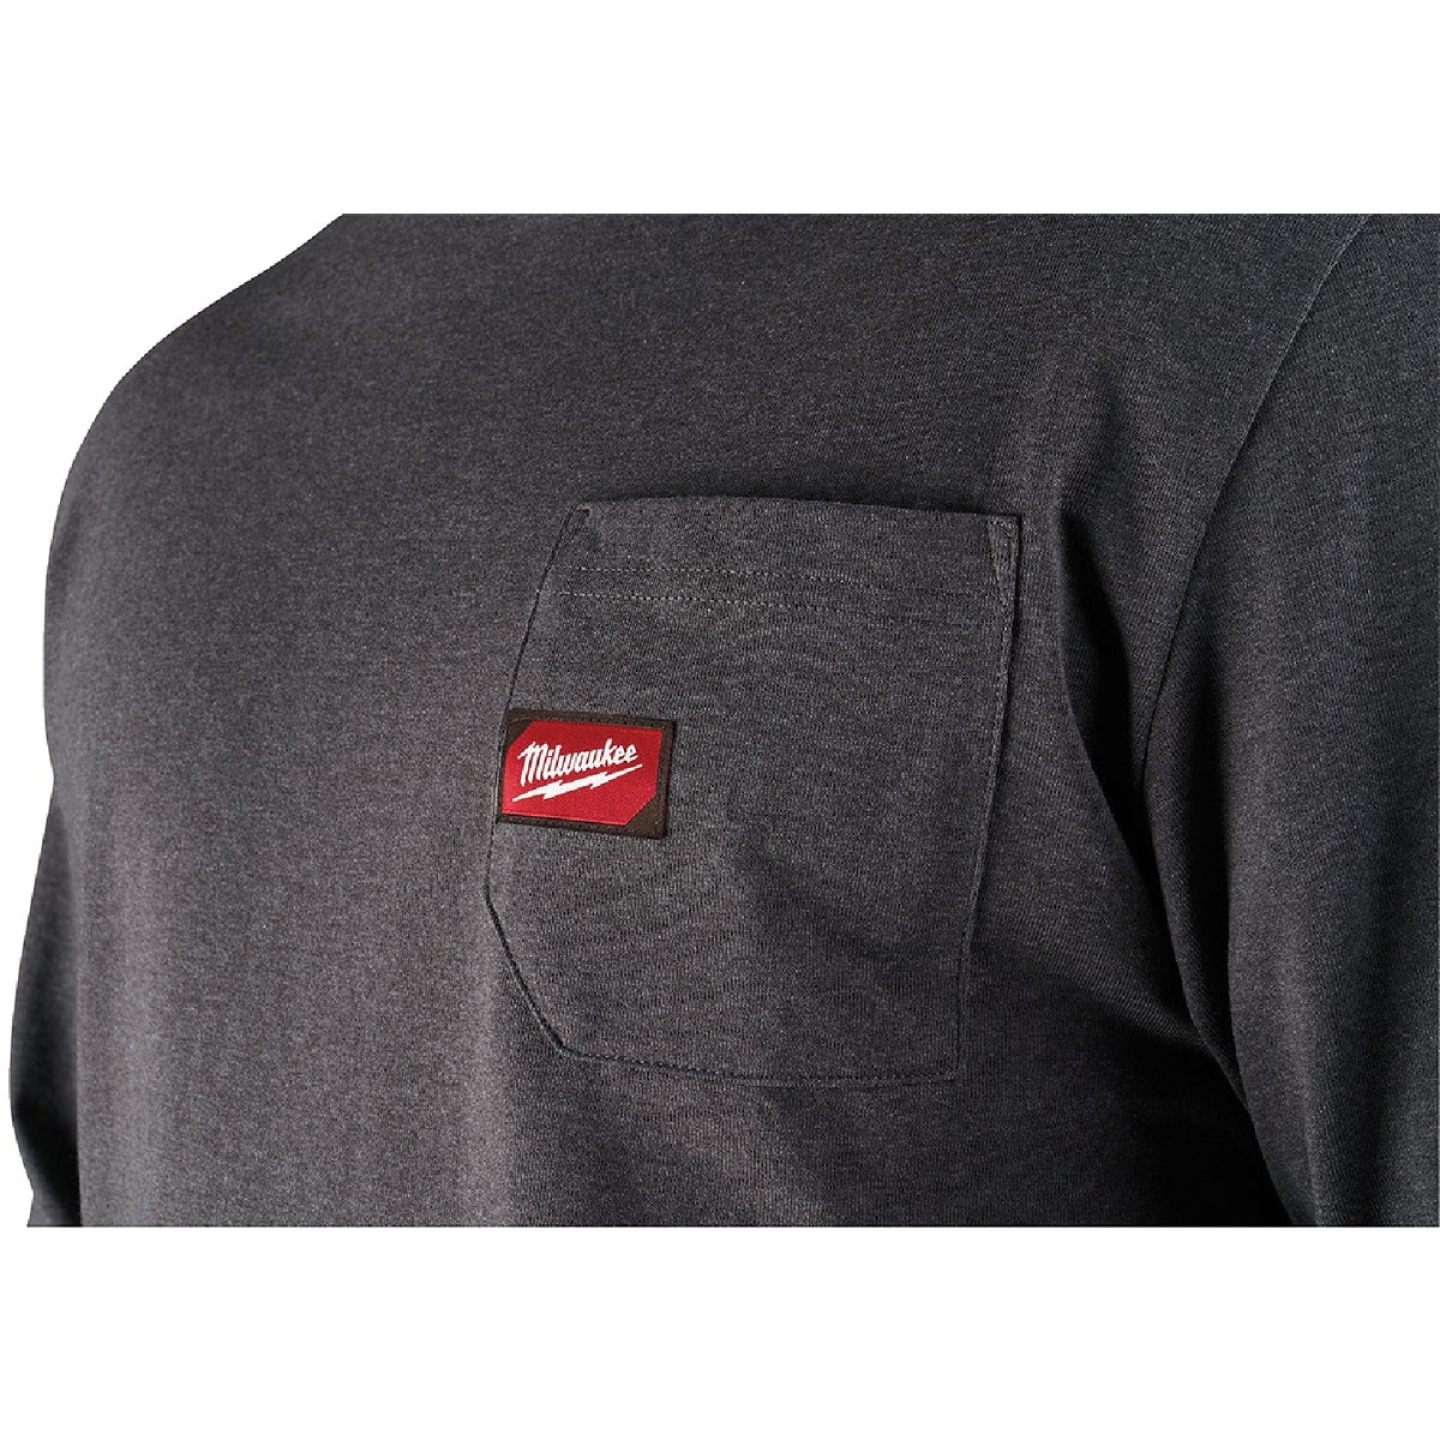 Milwaukee XL Gray Long Sleeve Men's Heavy-Duty Pocket Shirt Image 4